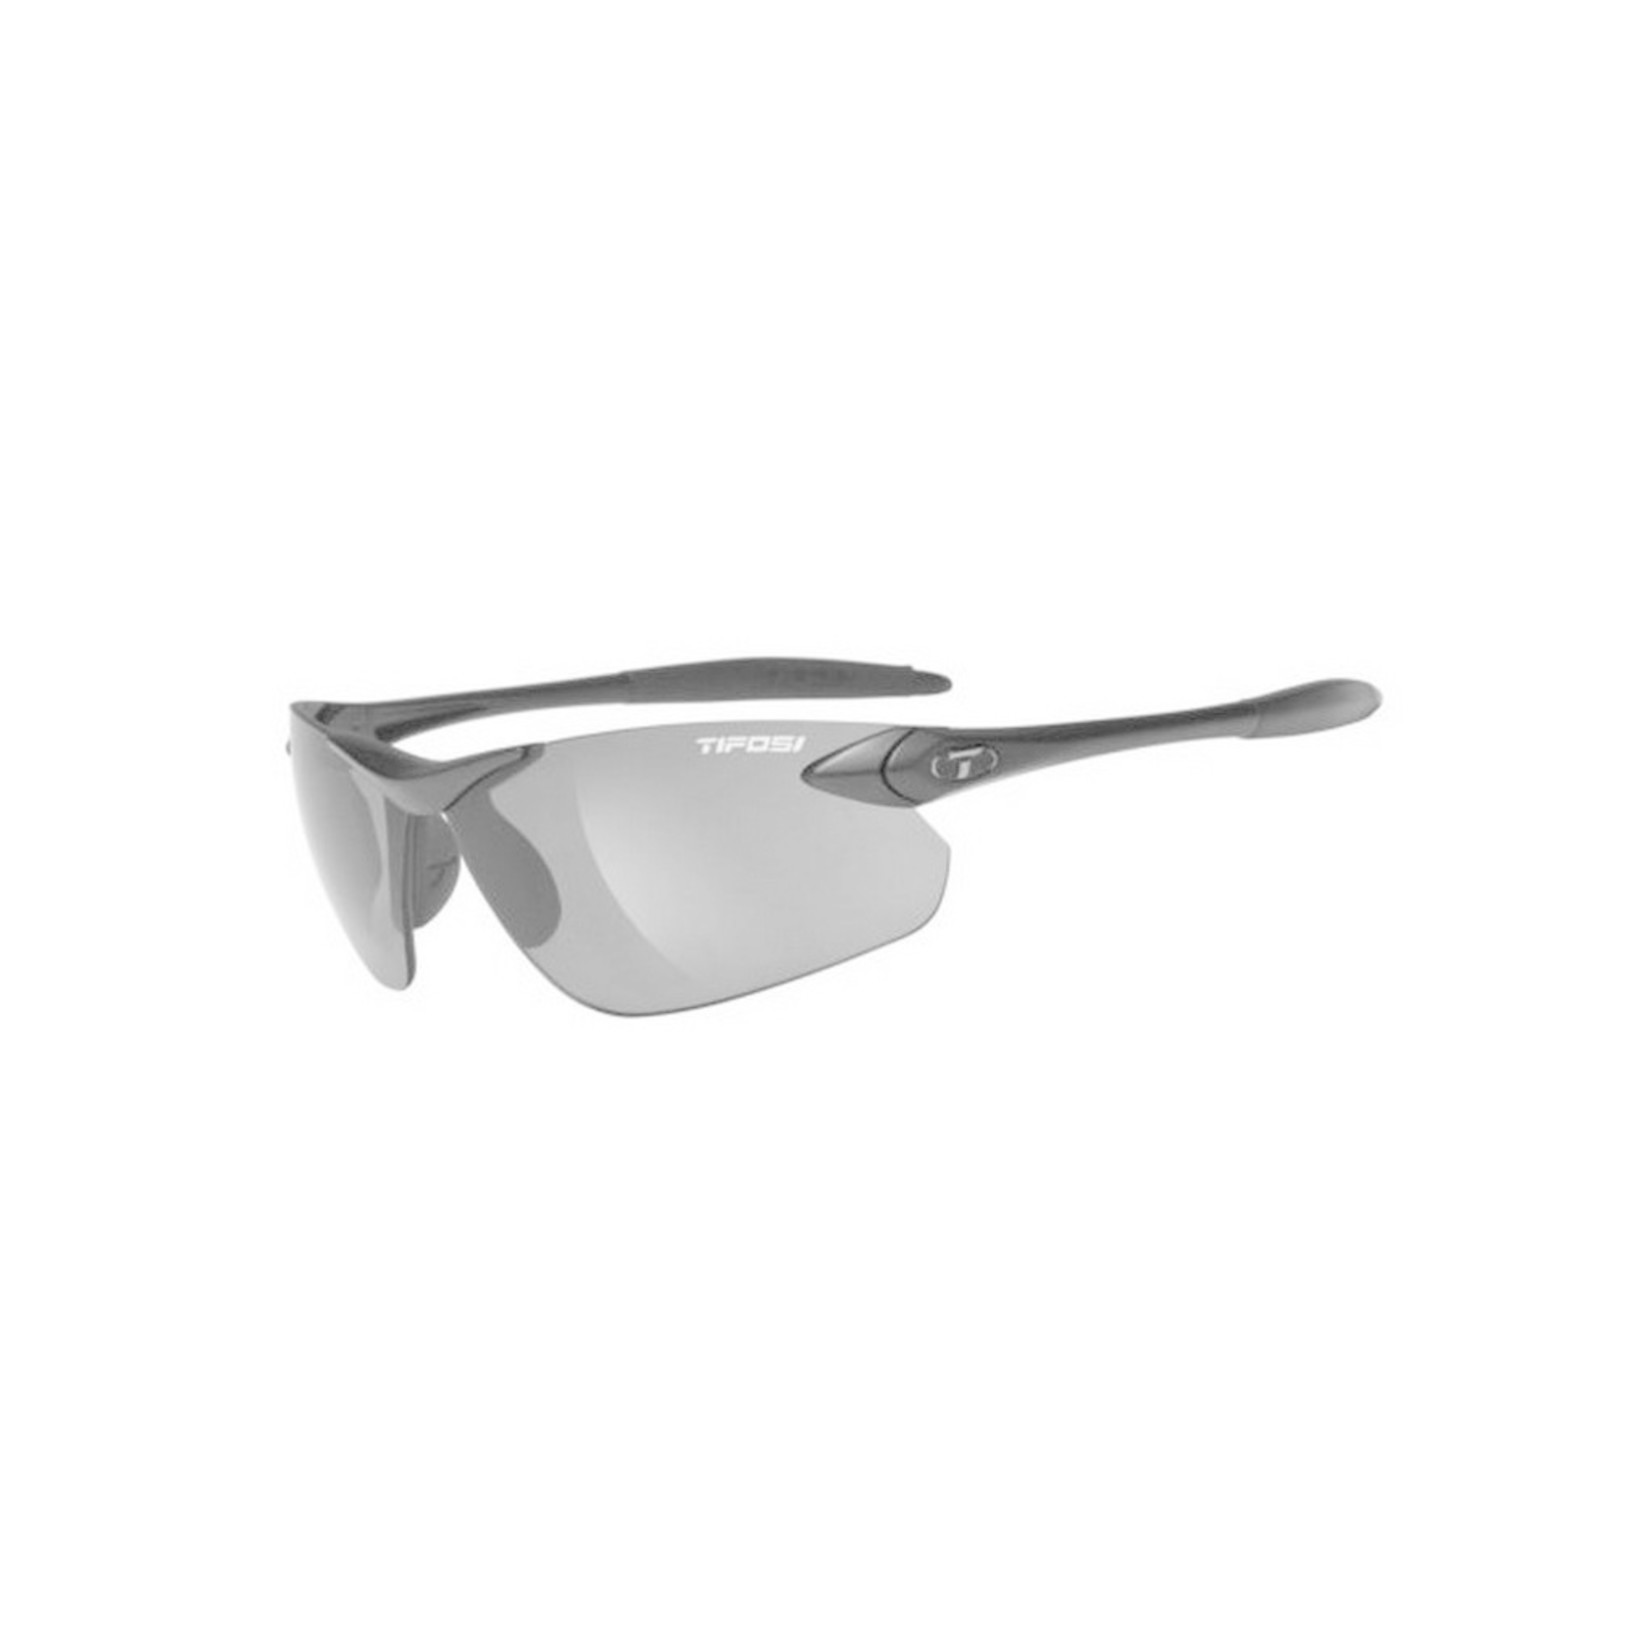 TIFOSI OPTICS Sunglasses Tifosi Seek FC Matte Black